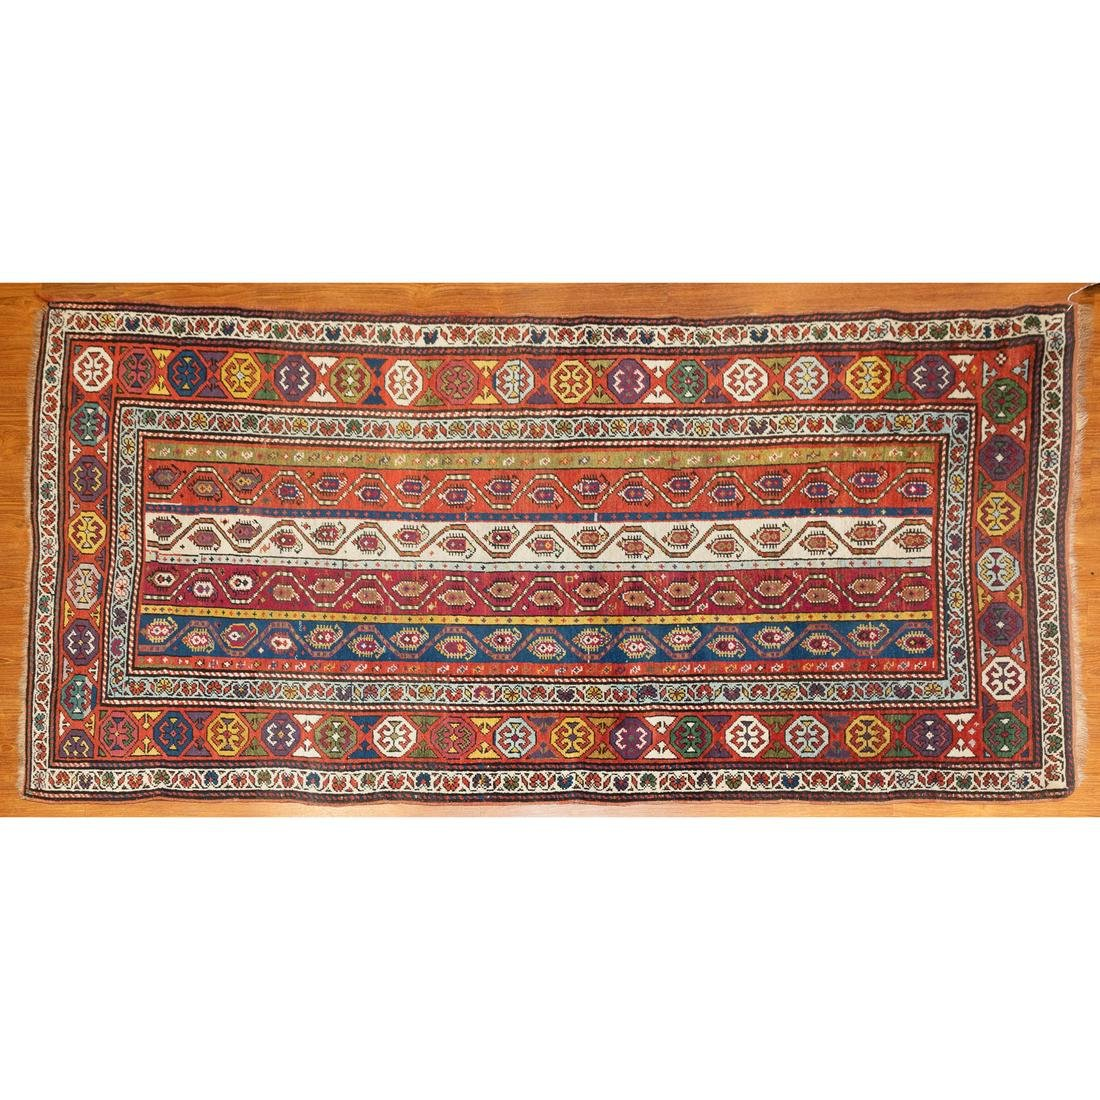 Antique Genje Rug, Caucasus, 3.8 x 7.7